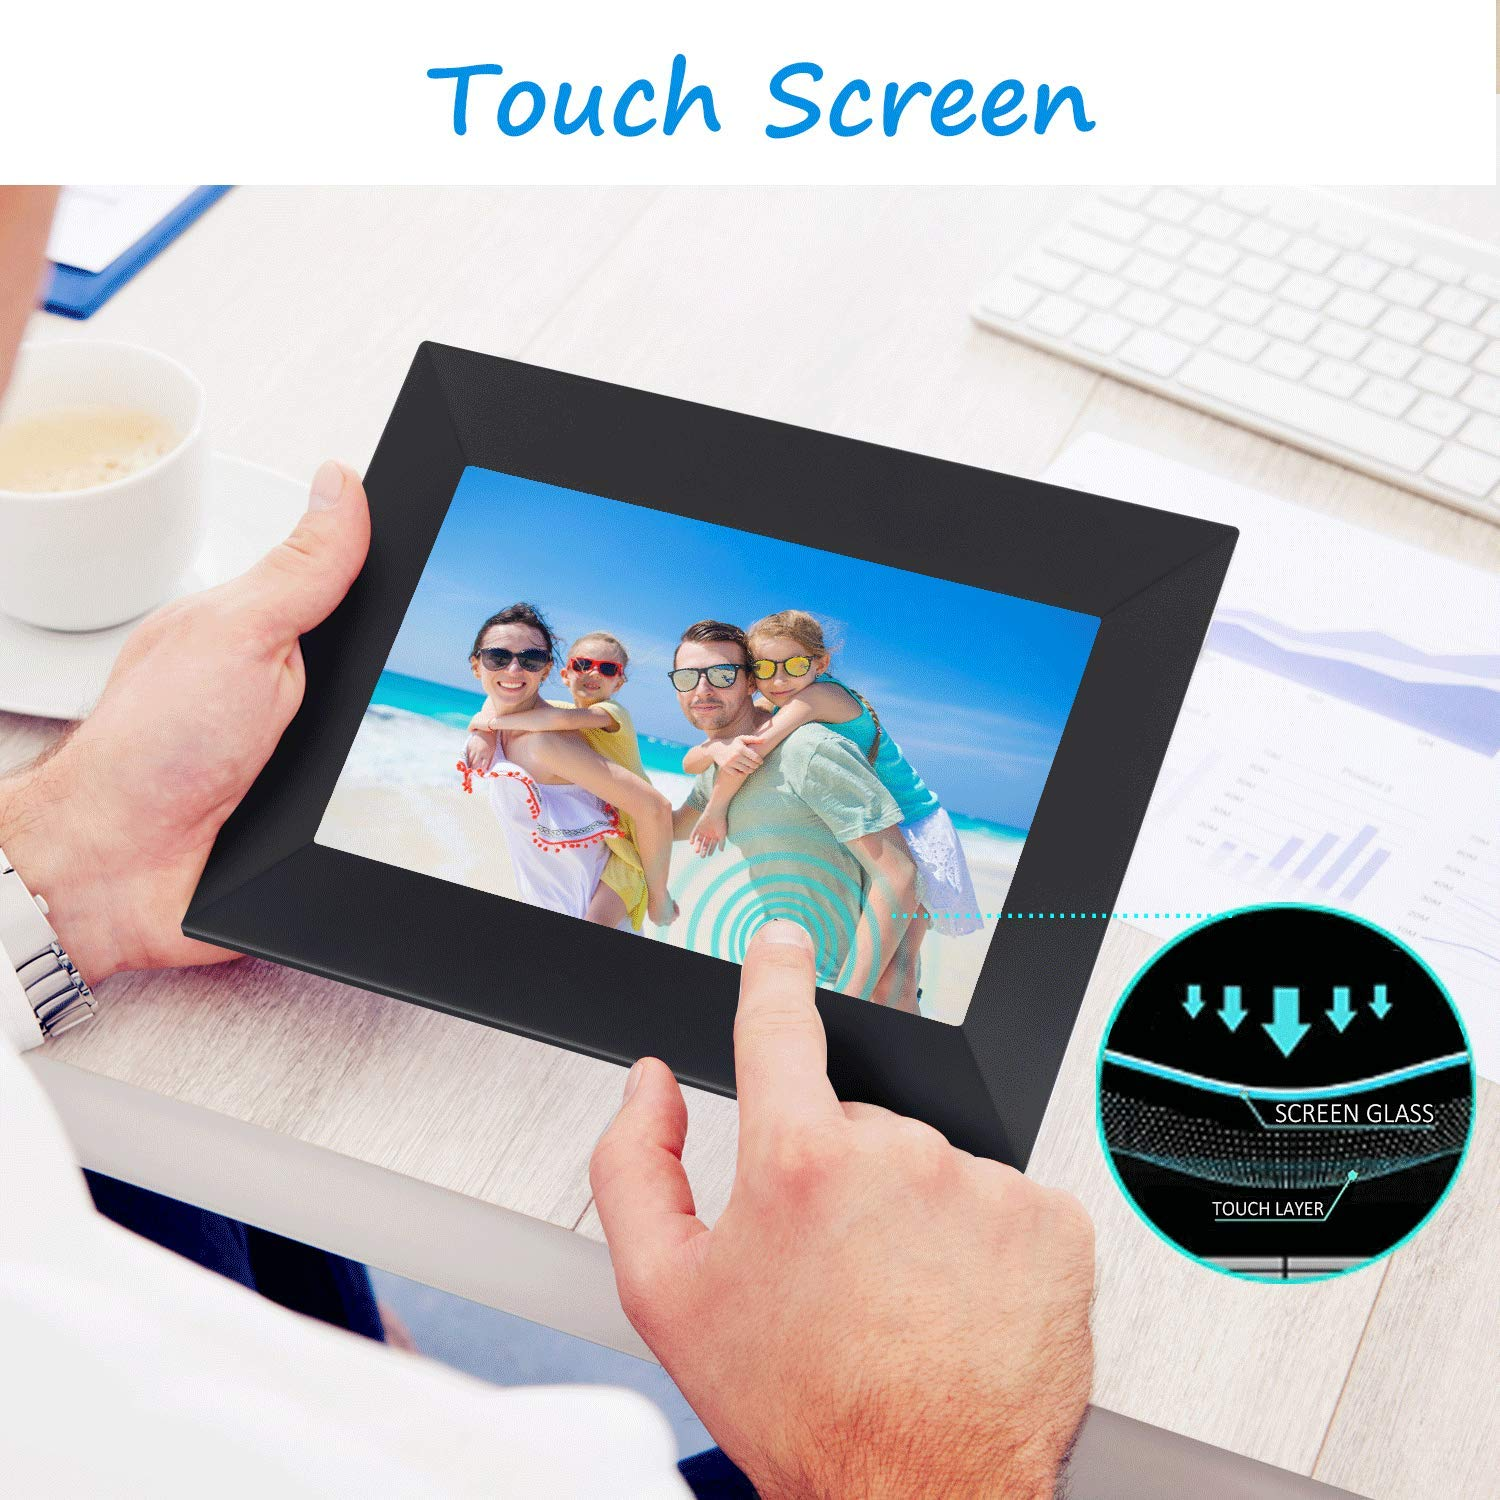 Dhwazz 8 Inch WiFi Digital Photo Frame, IPS Electronic Picture Frame with LCD Touch Screen, 8GB Internal Storage, Wall-Mountable, Display and Share Photos Instantly via Mobile APP by Dhwazz (Image #3)